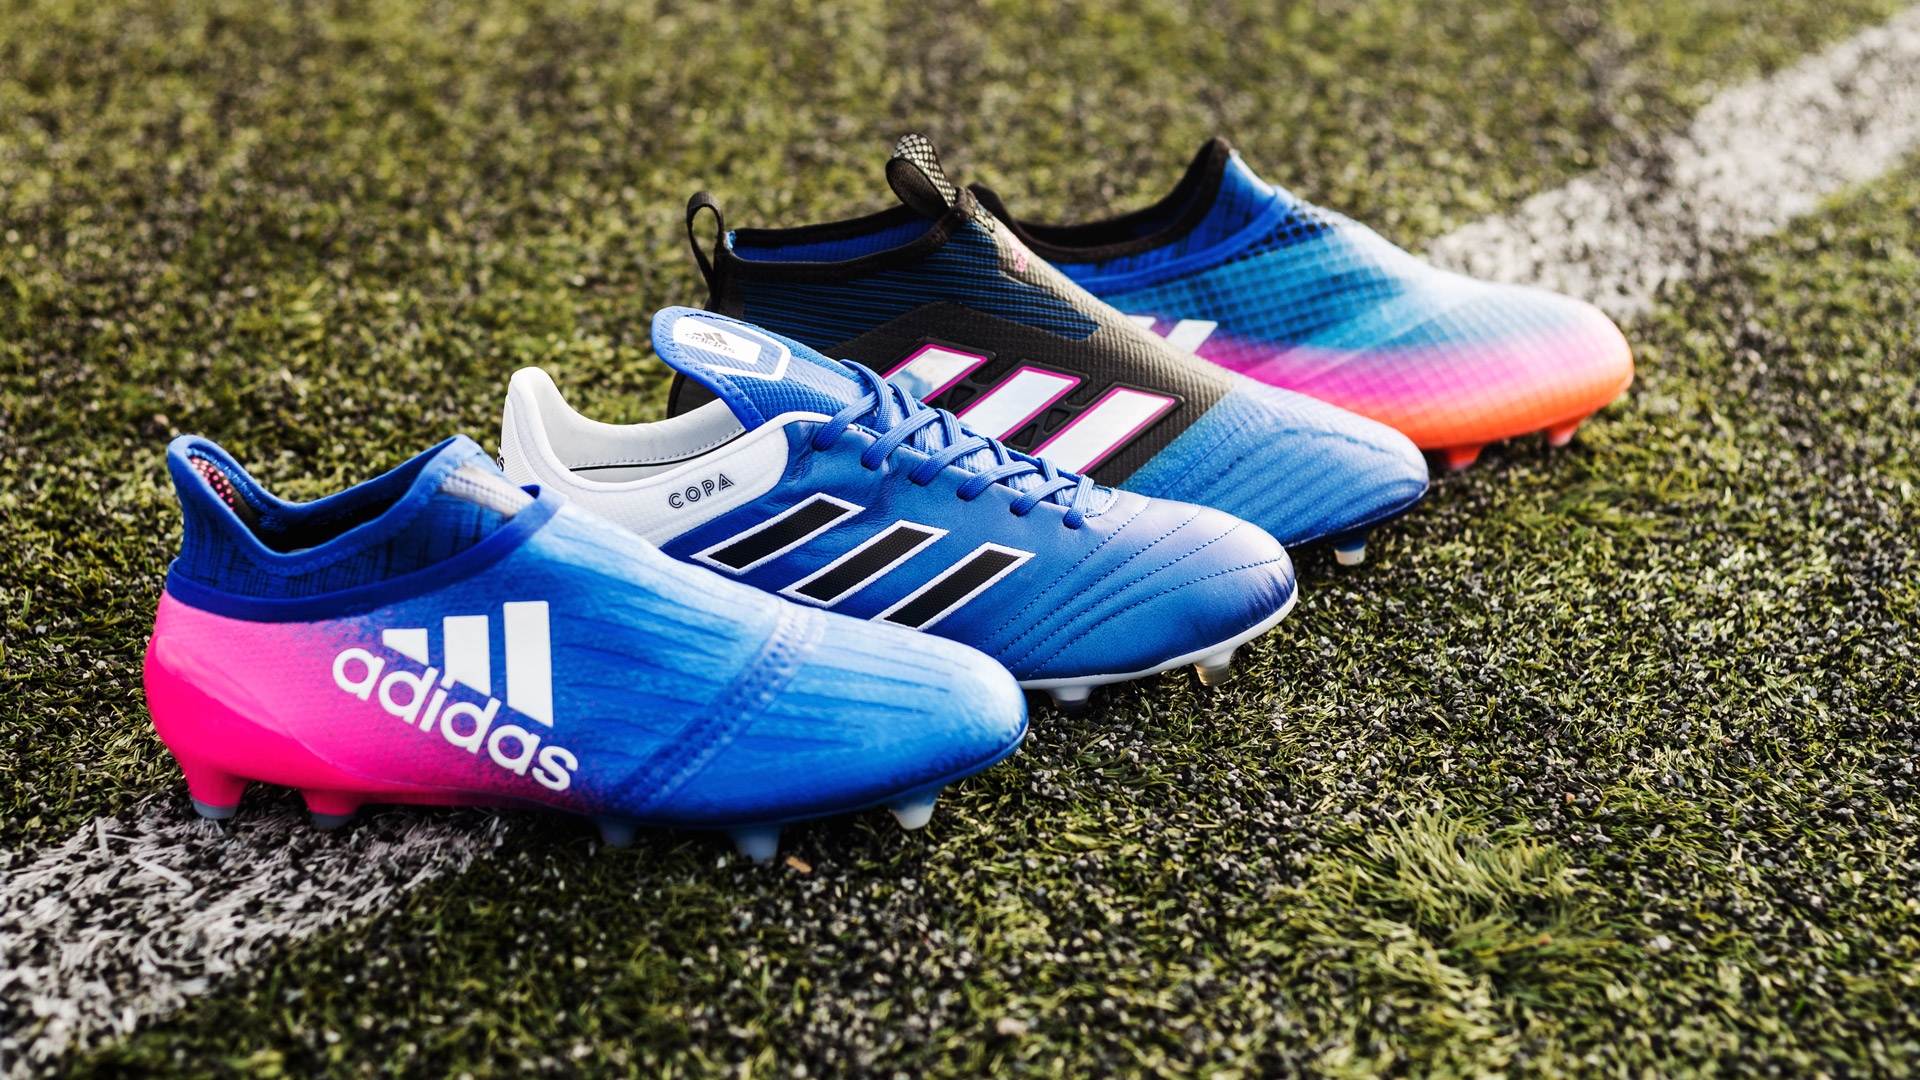 new product 893e7 38bbc adidas launch complete Blue Blast collection  New boots for the stars